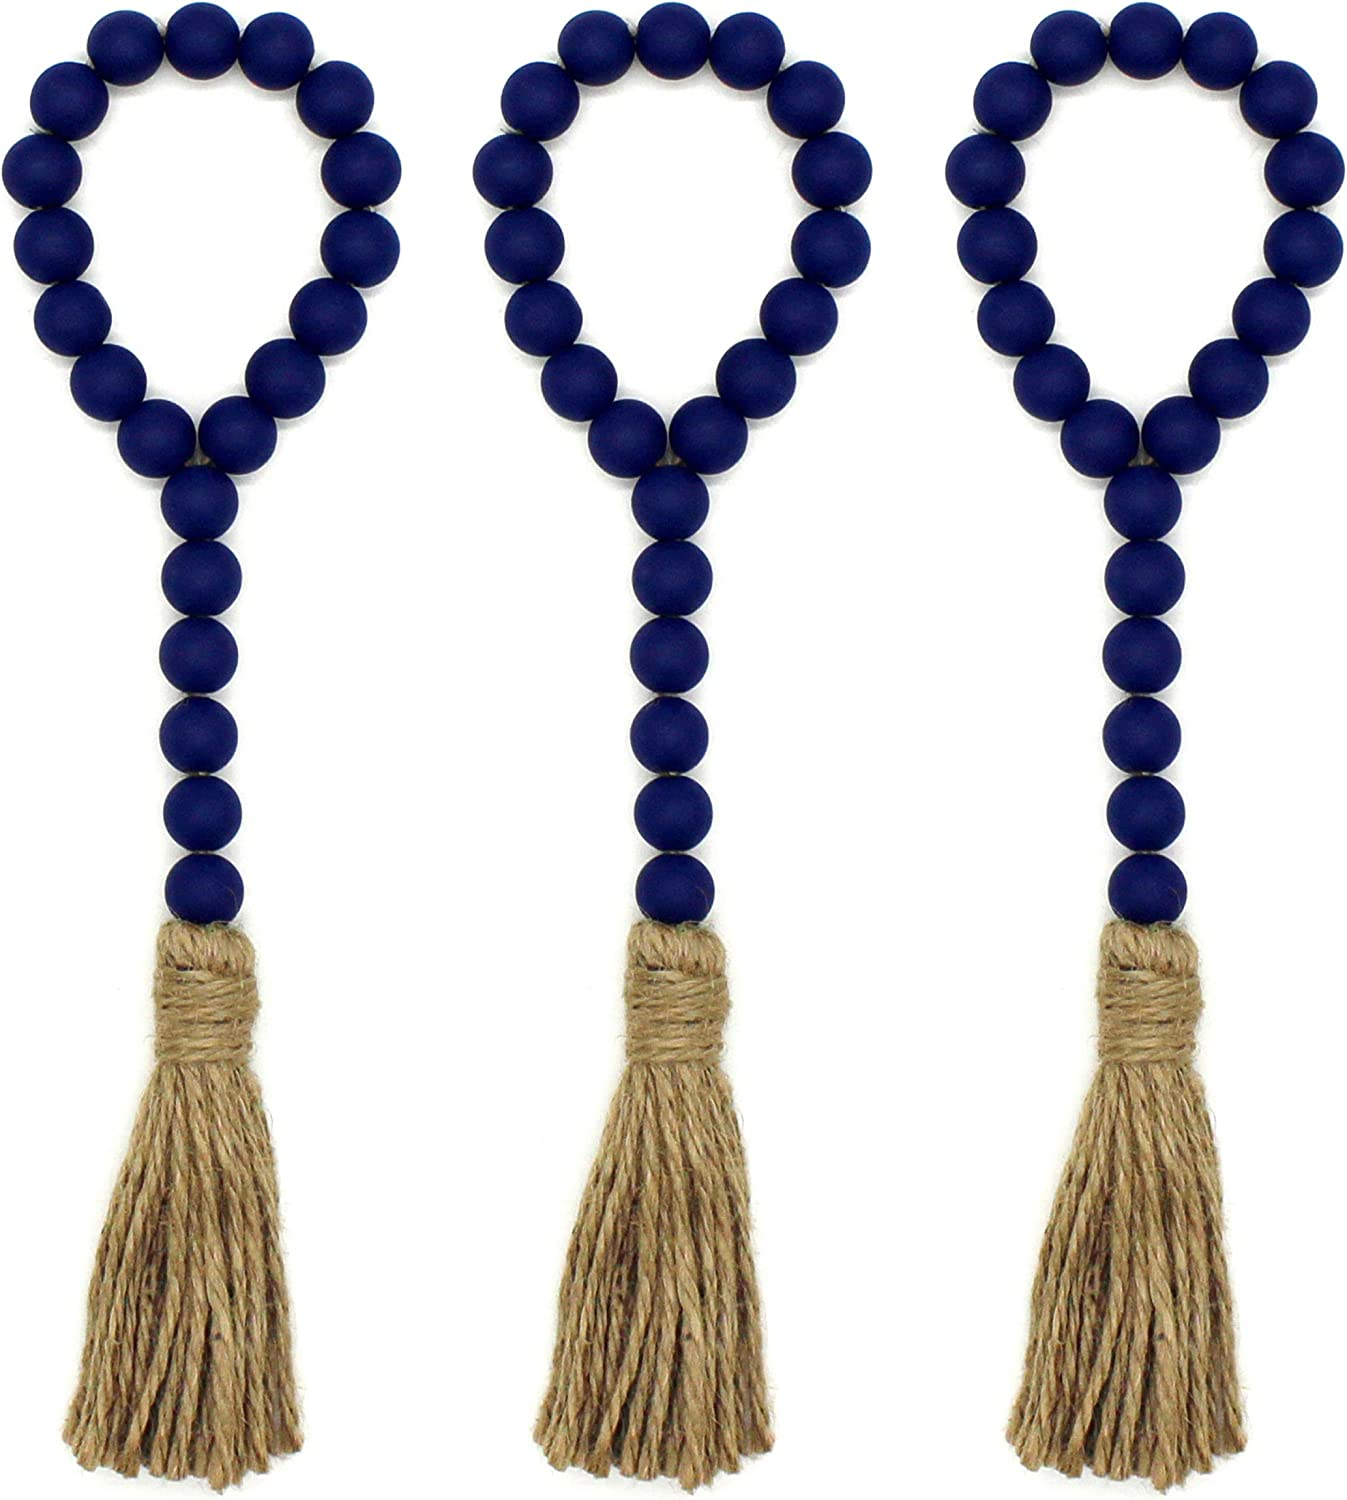 CVHOMEDECO. Wood Beads Garland with Tassels 3 PCS Farmhouse Rustic Wooden Prayer Bead String Wall Hanging Accent for Home Festival Decor. Navy Blue